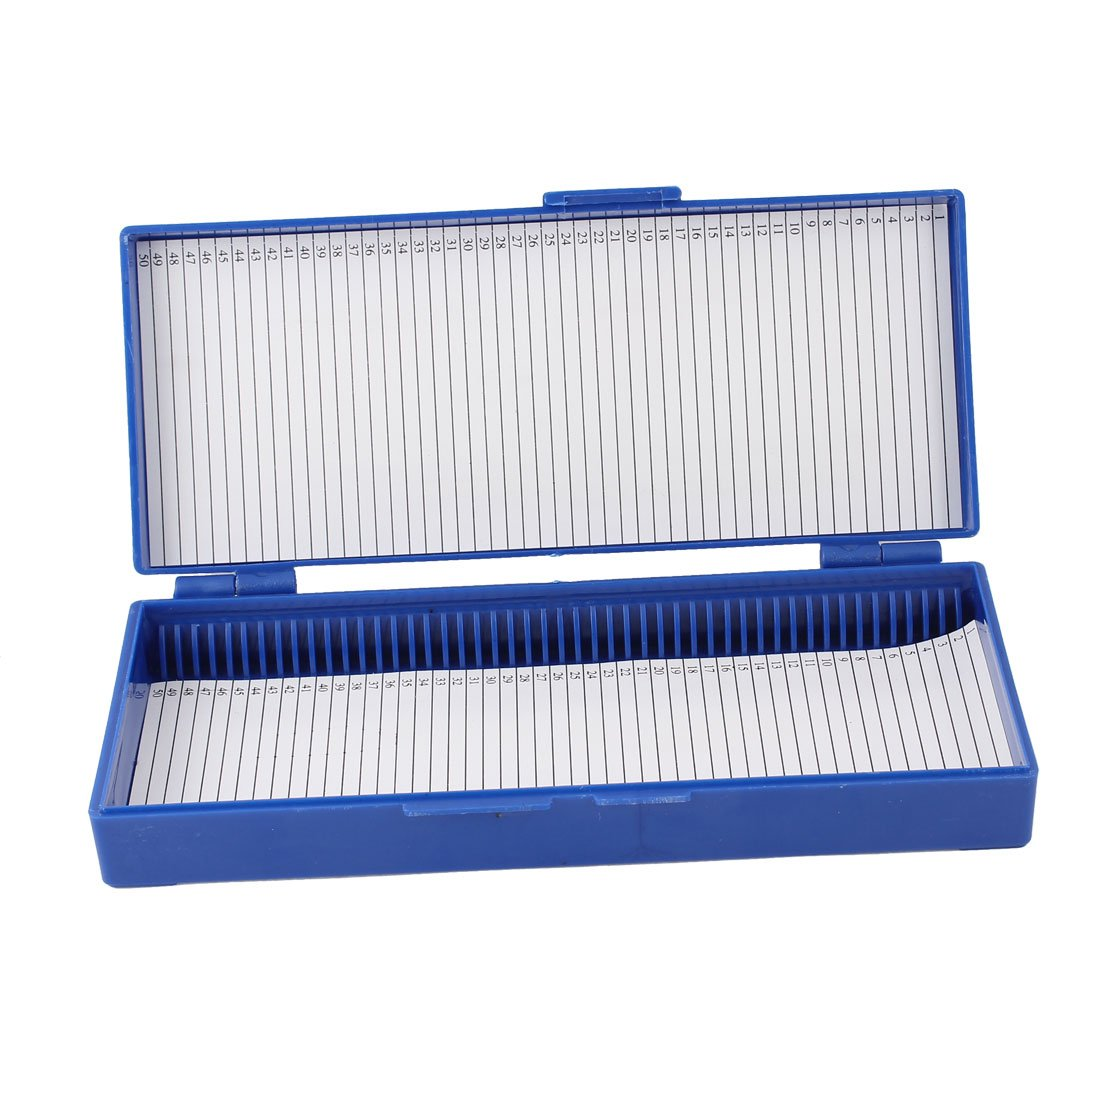 Royal Blue Plastic 50-Place Microslide Slide Microscope Box Sourcingmap a14030600ux0103